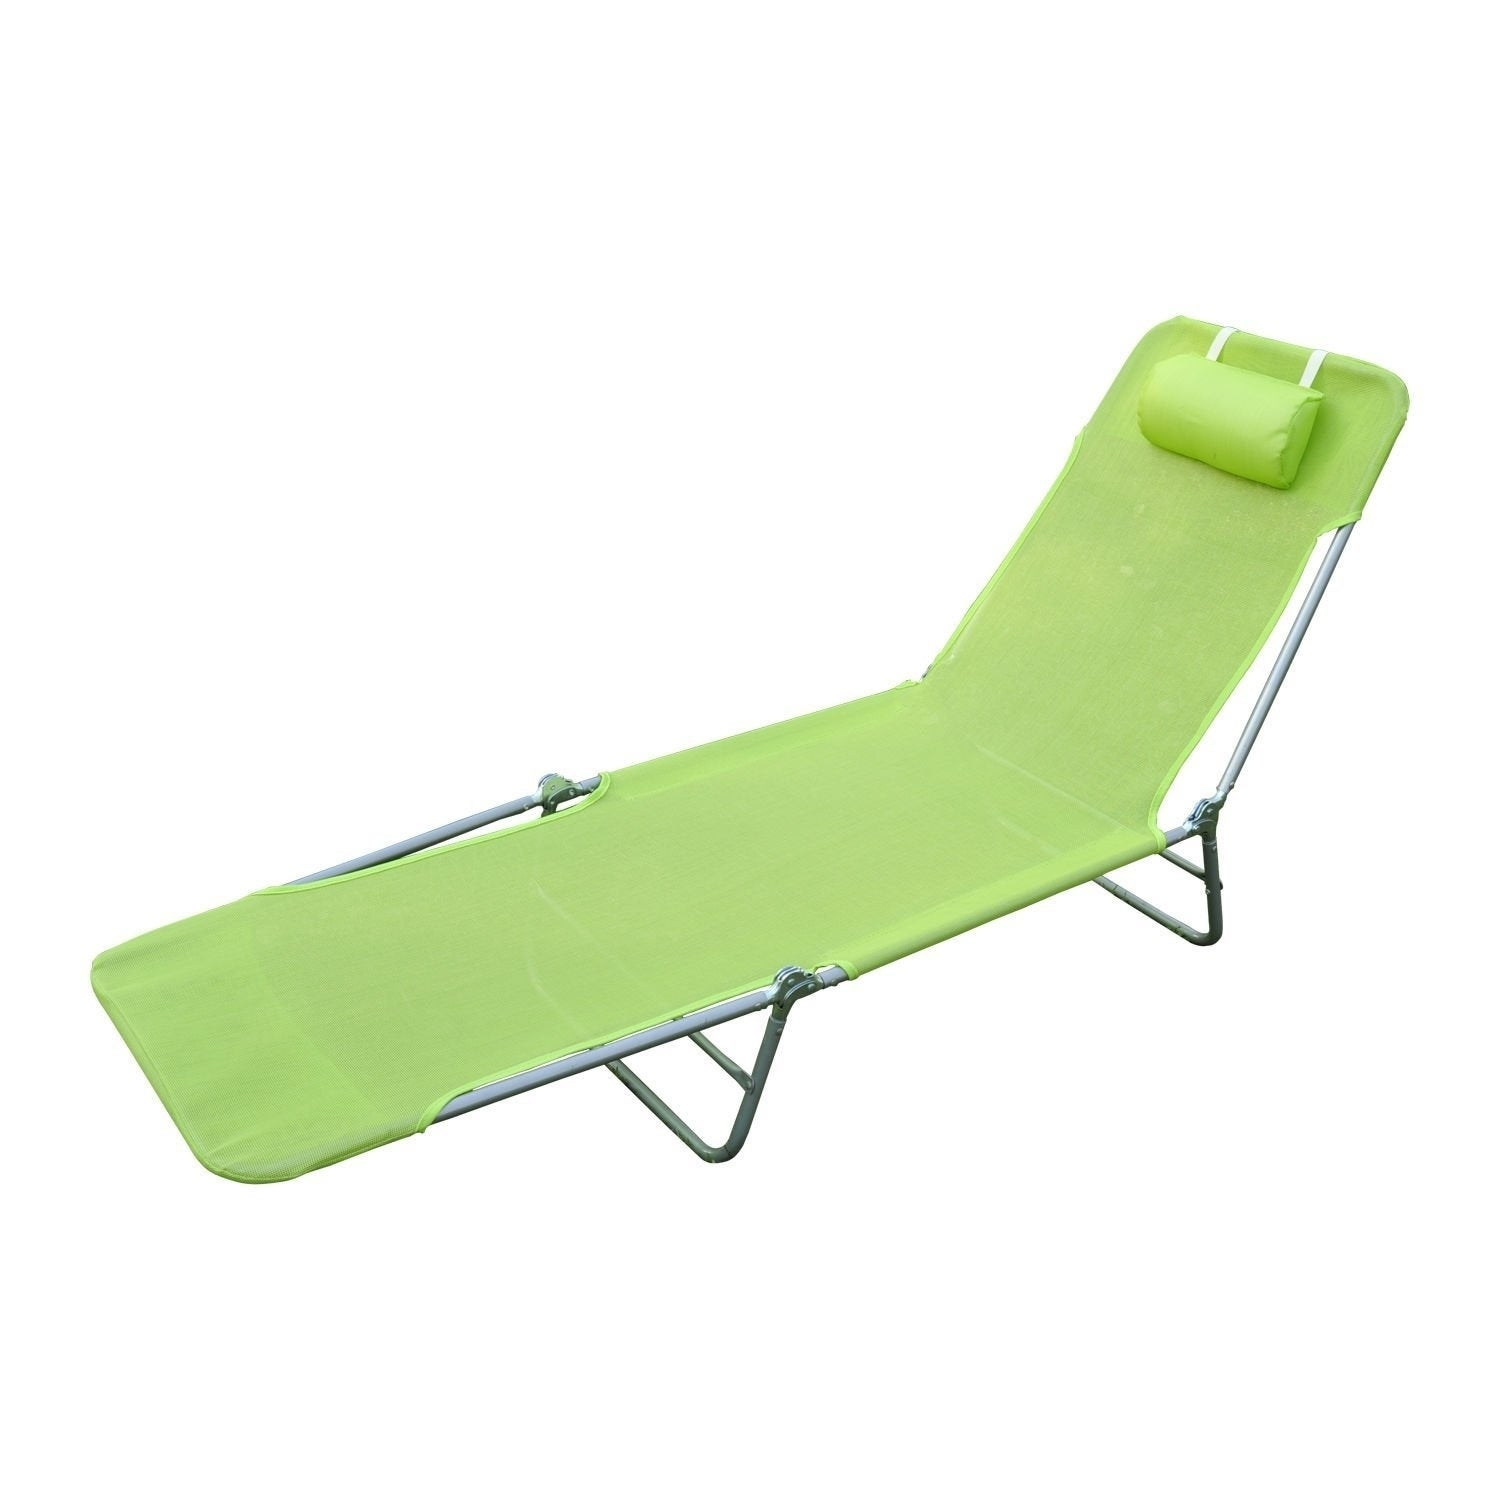 Outsunny Aluminum Lightweight Outdoor Patio Folding Chaise Lounge Chair Green